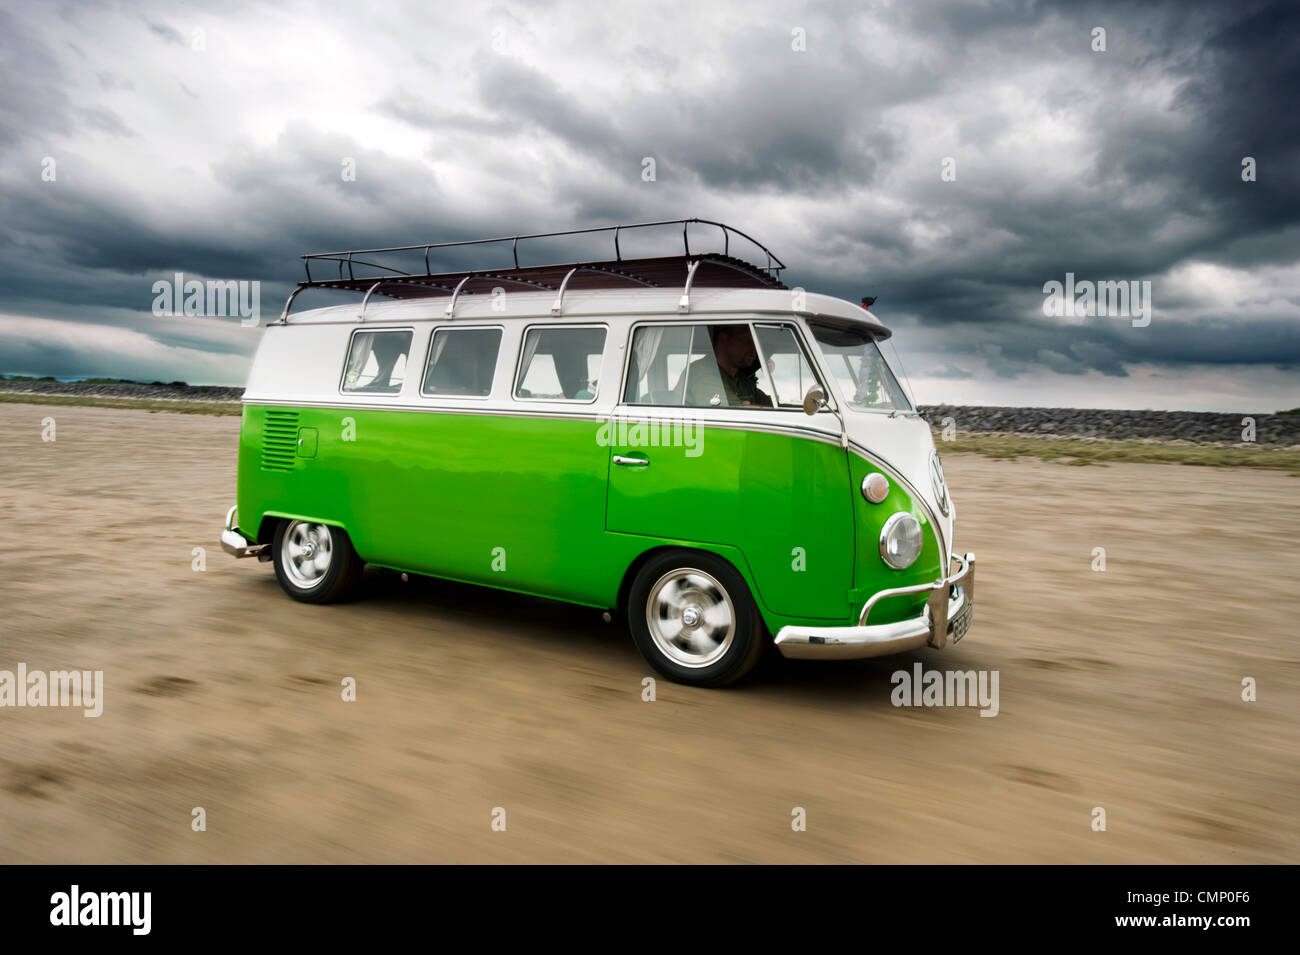 Green Vw Volkswagen Split Screen Camper Van Bus Hippie Hippy 1960s 1950s Aircooled Retro Beach British